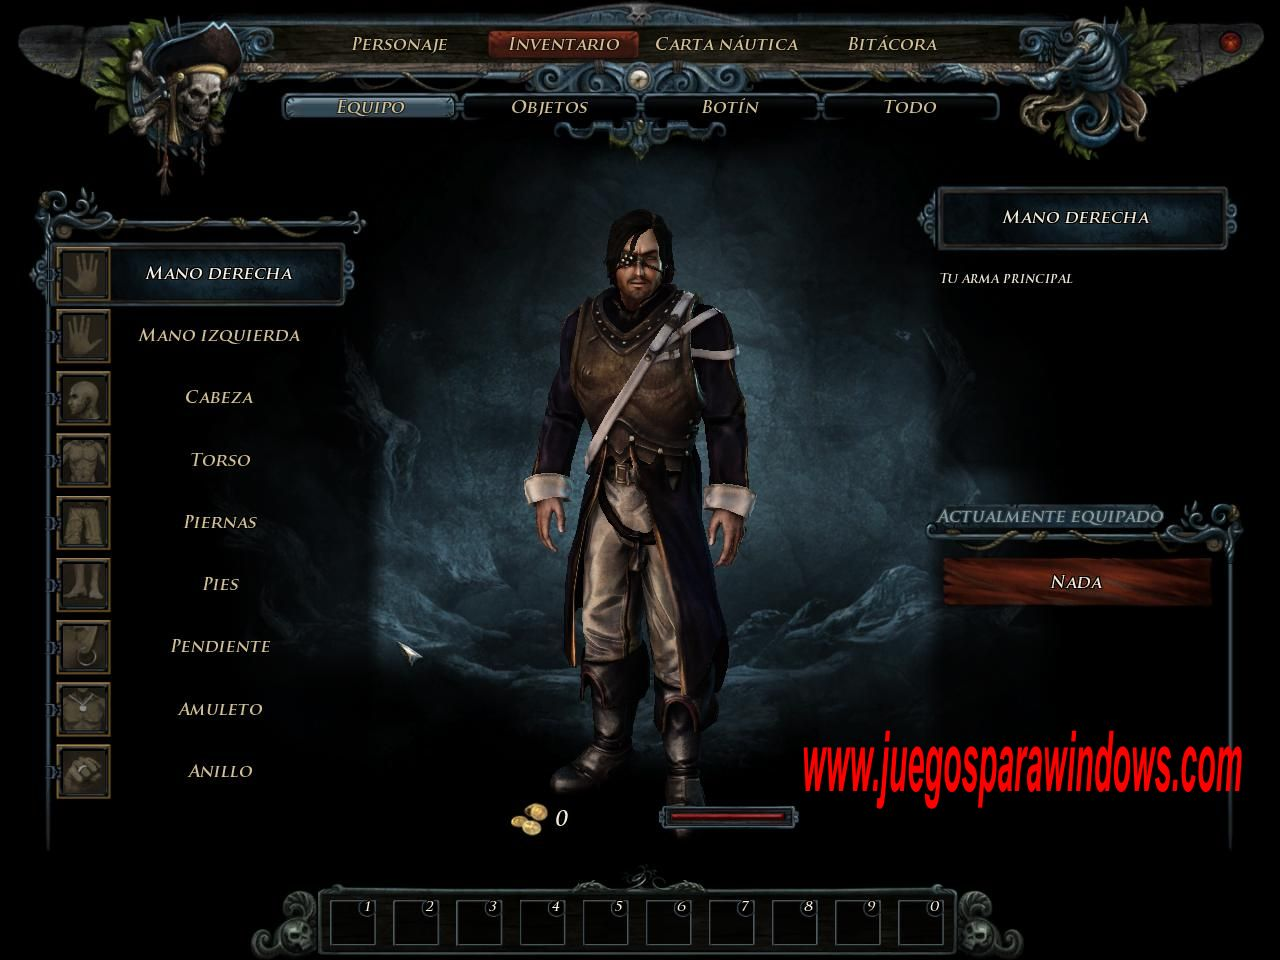 Risen 2 Dark Waters PC Imagenes Screenshot-www.juegosparawindows.com